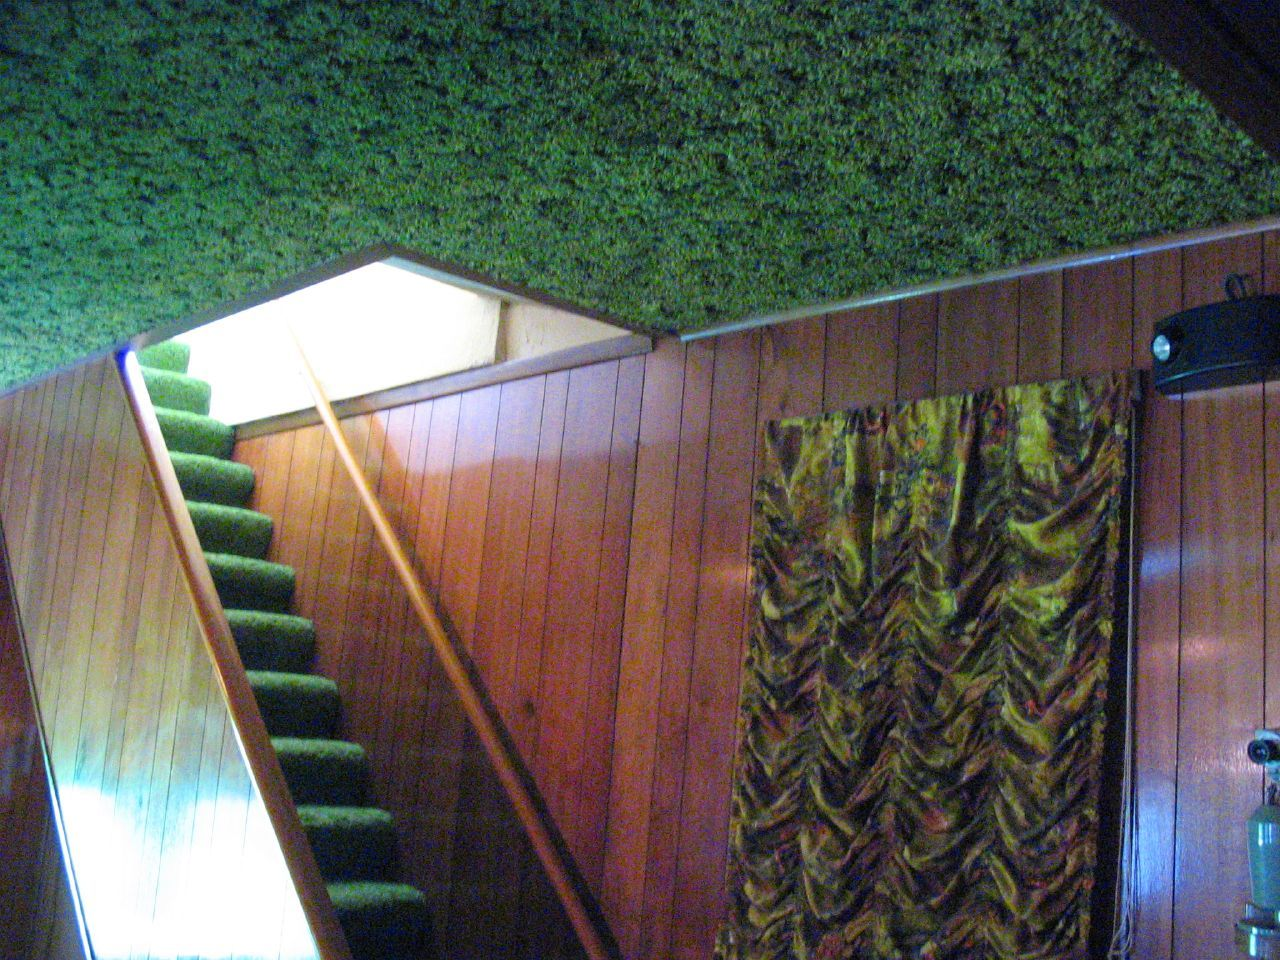 Basement Ceiling Ideas Fabric. fake grass on ceiling and stairs http www etoya ru  files images